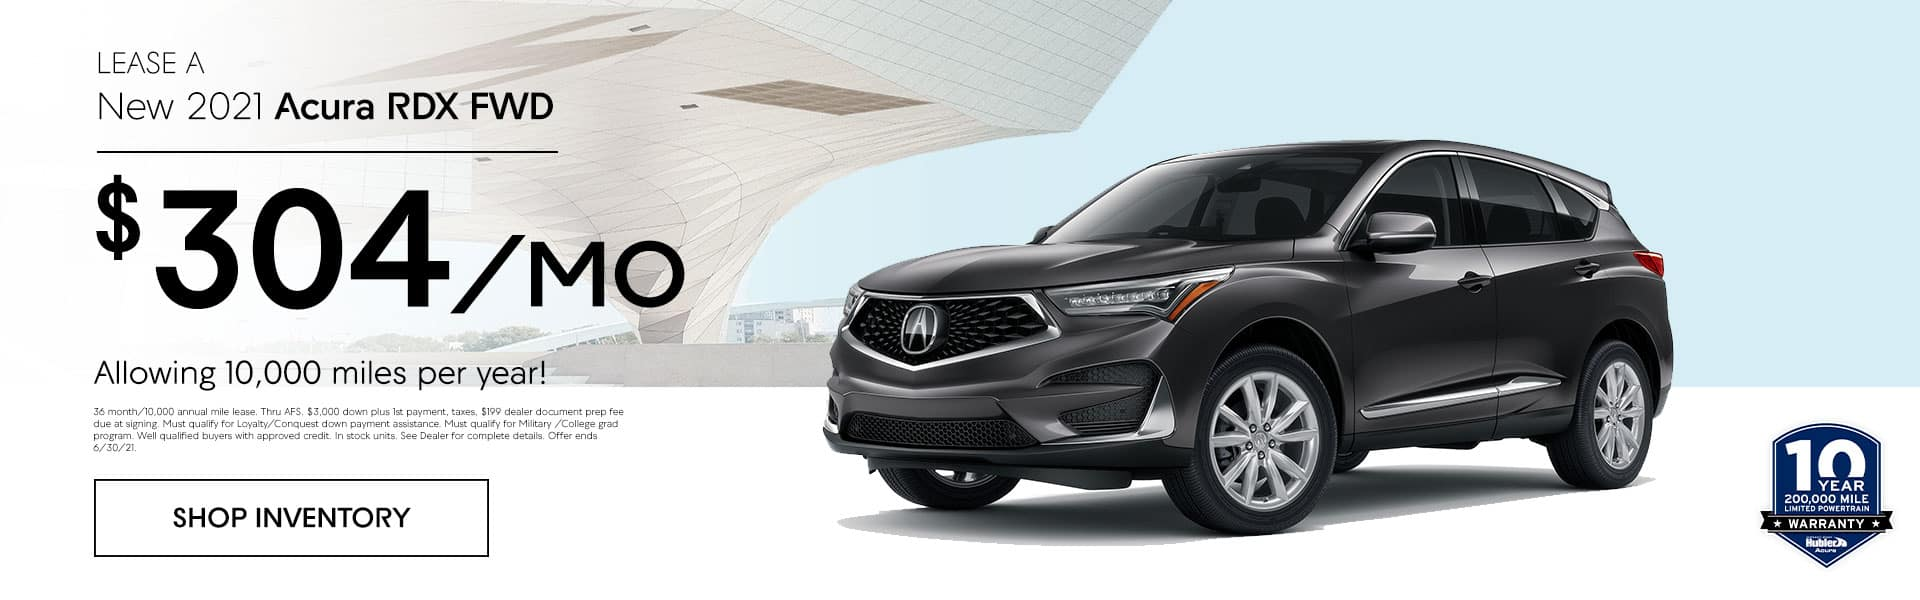 2021 Acura RDX FWD just $ 304.00 per month! Allowing 10,000 miles per year!